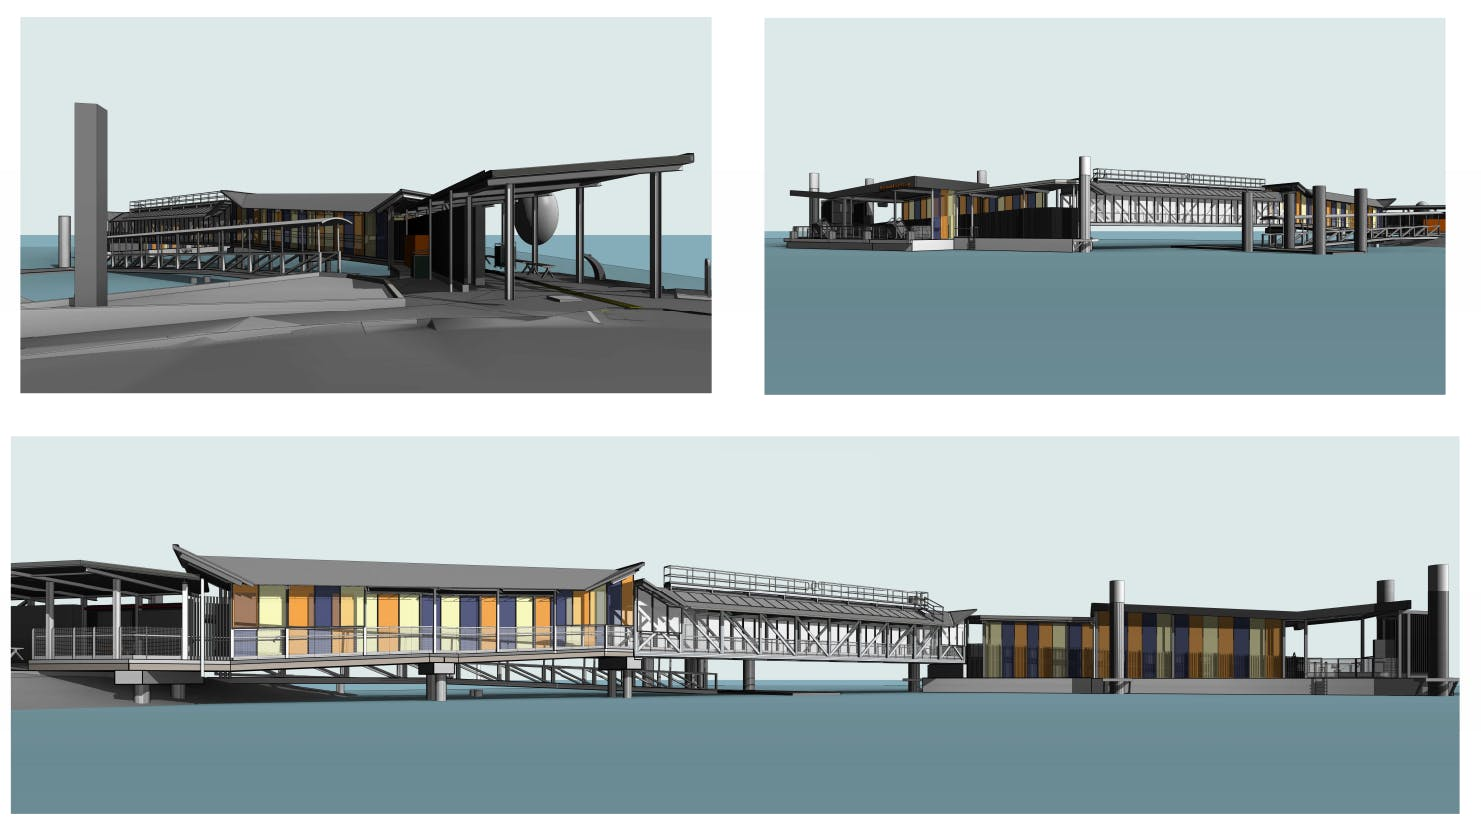 3D images of the future Lamb Island ferry terminal